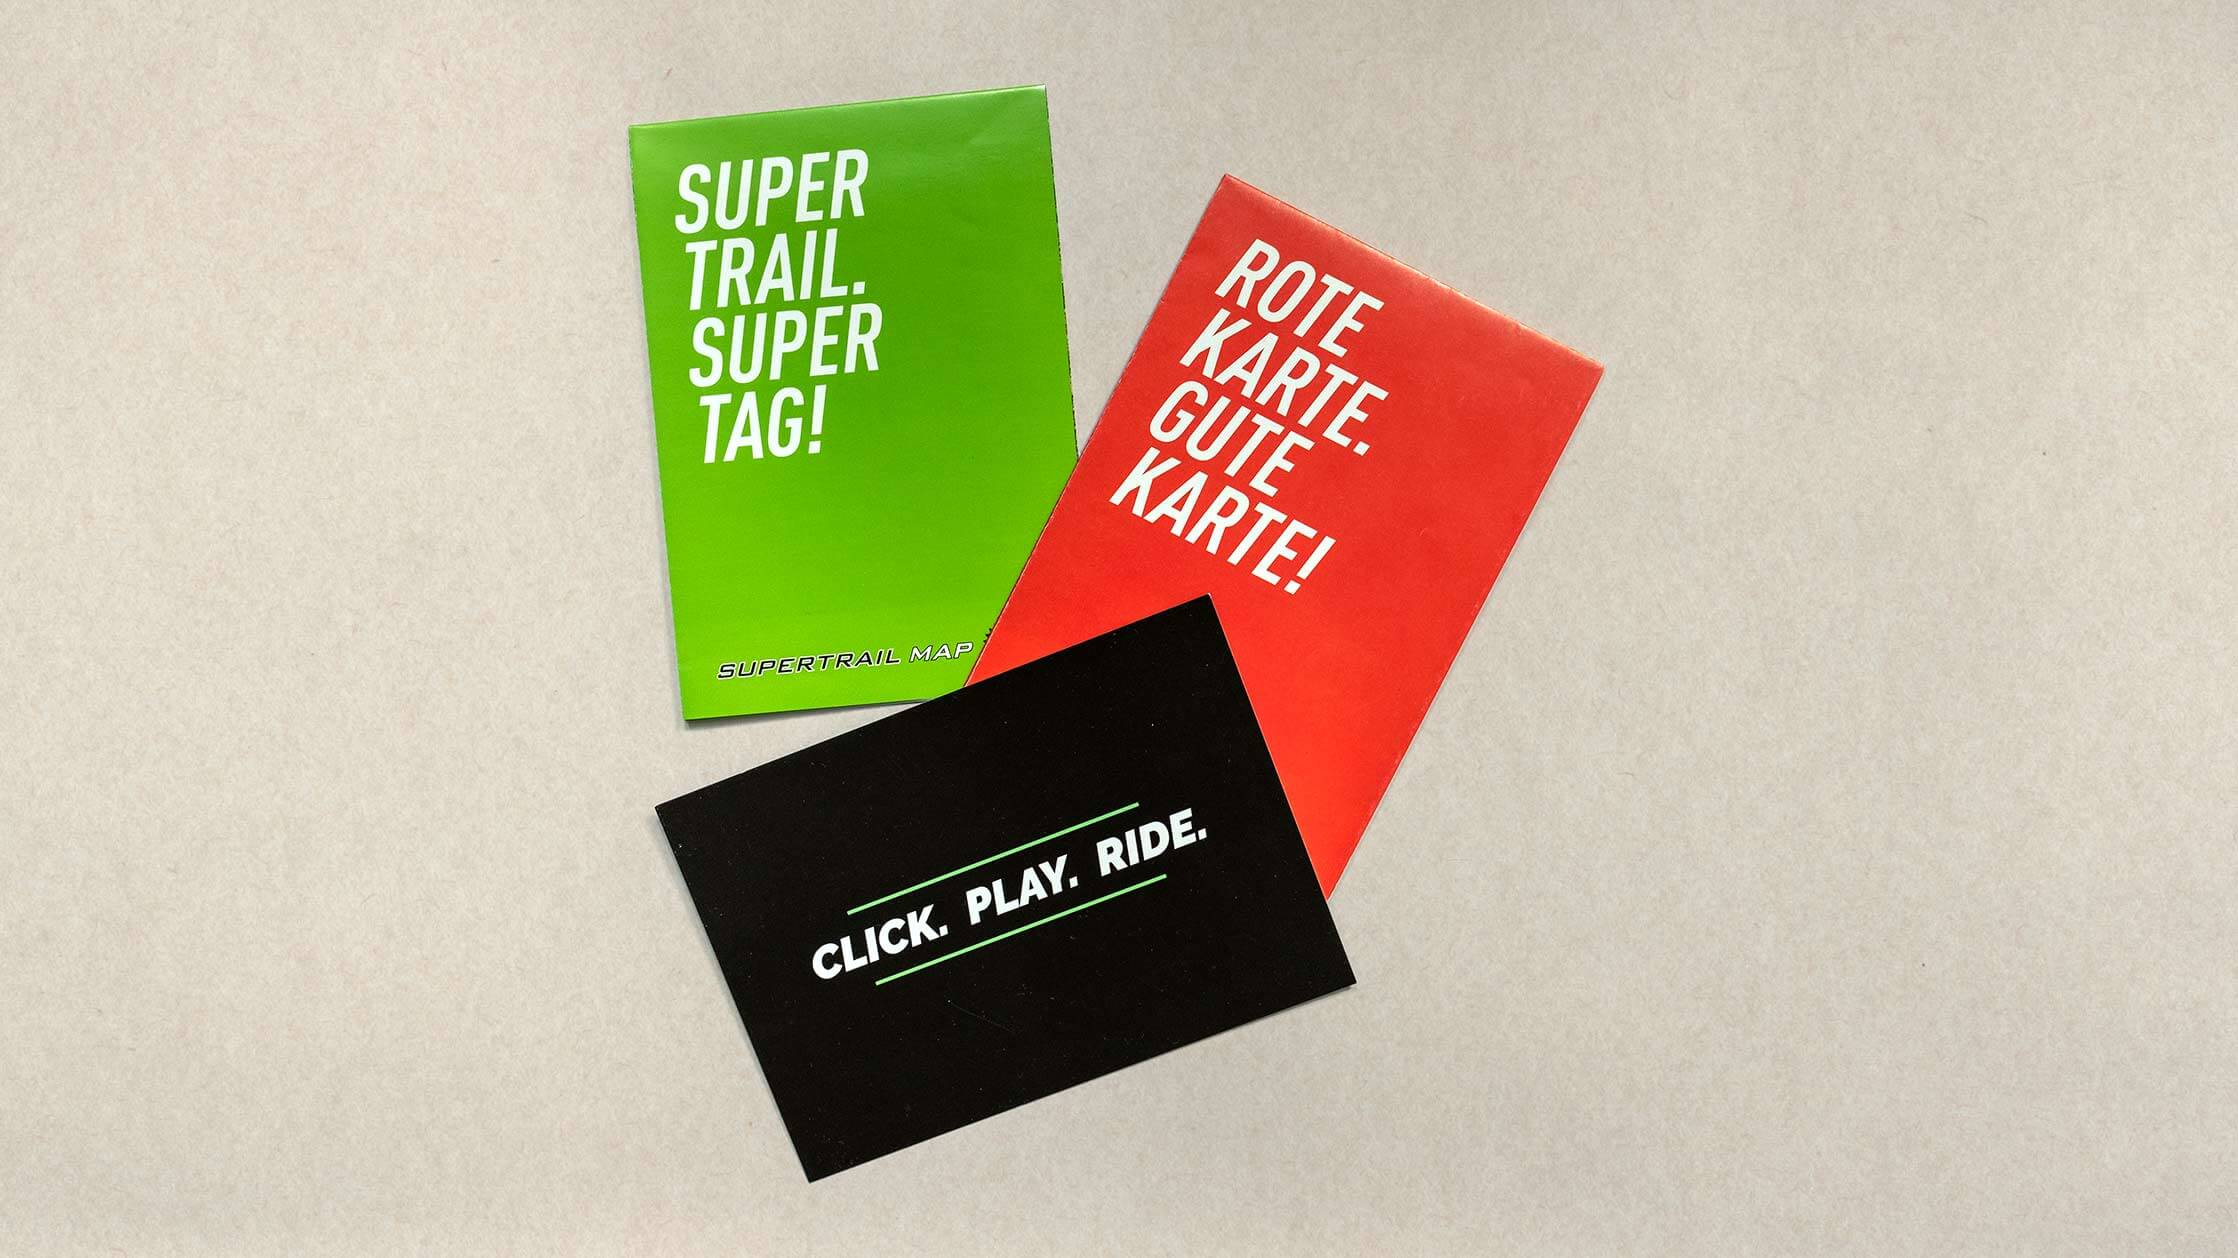 Photo of a green, red and black Flyer for Supertrail Guide, Freeride Map and Supertrail Map